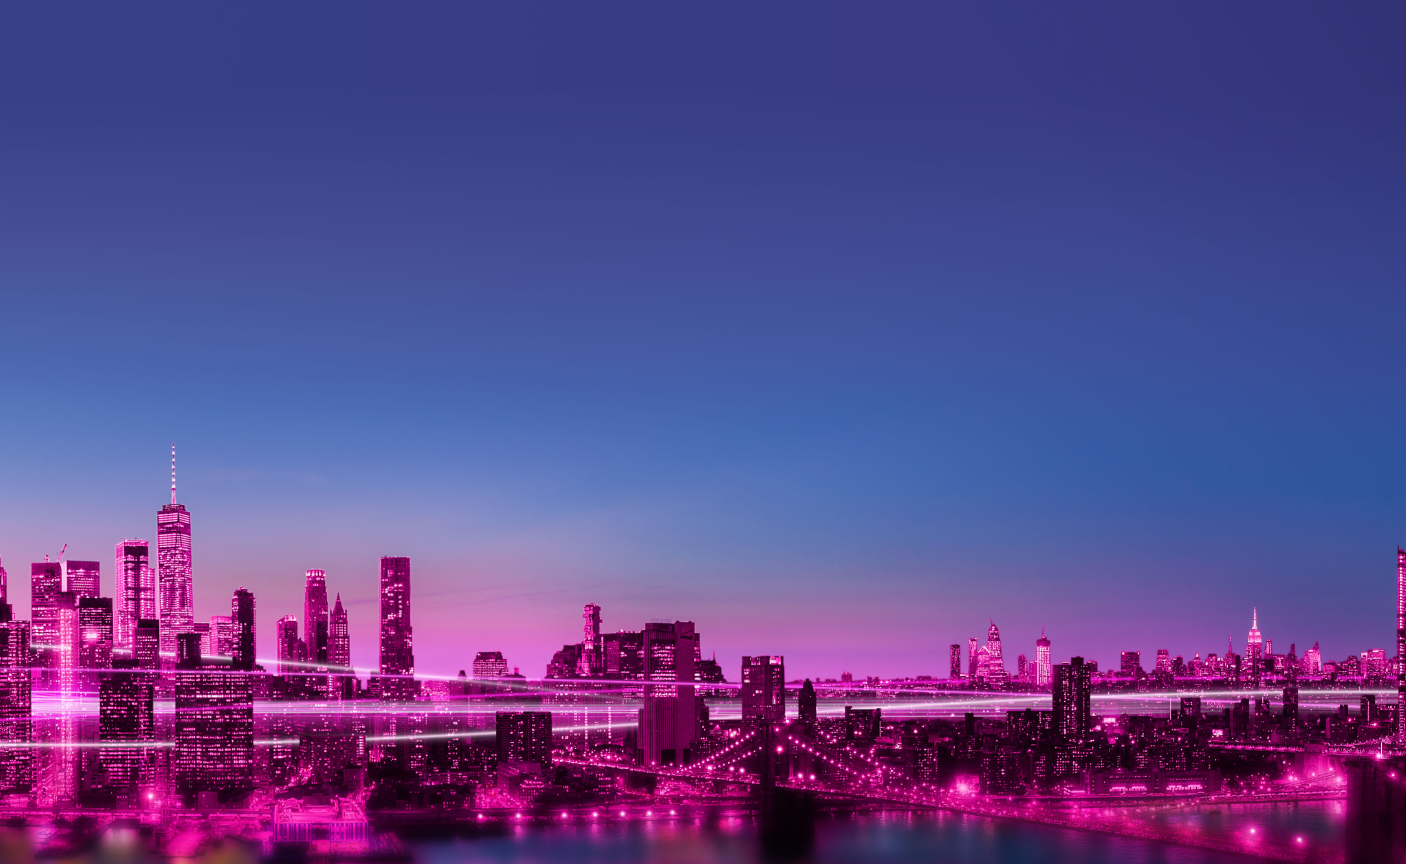 A Cityscape tinted pink with streaks of light weaving through buildings